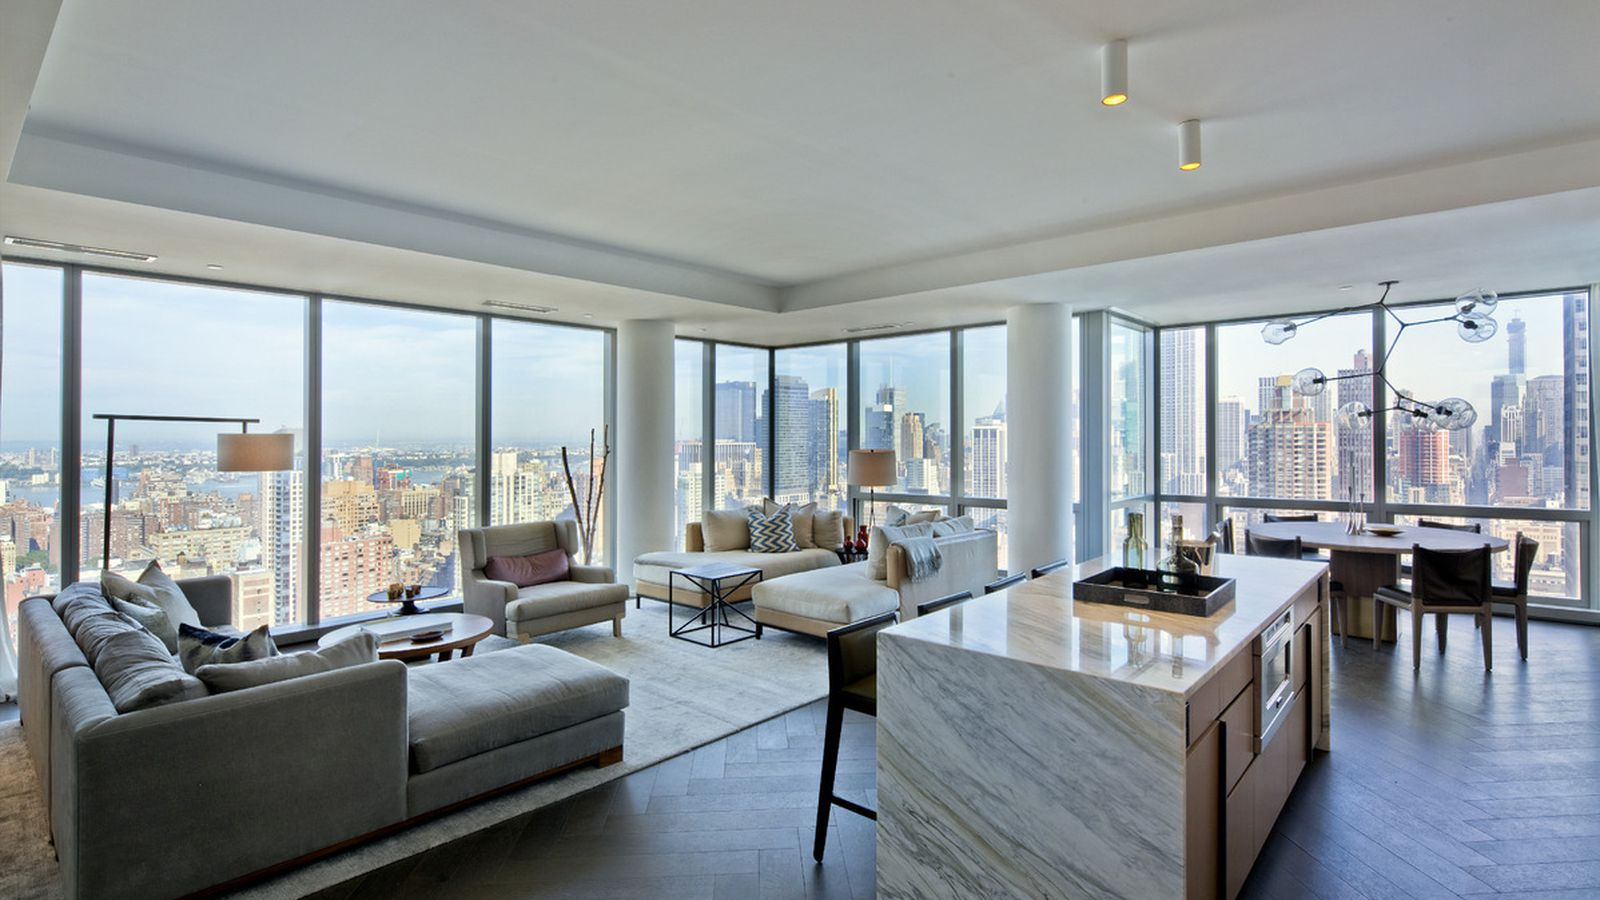 Tom Bradys NYC apartments are highend paparazziproof